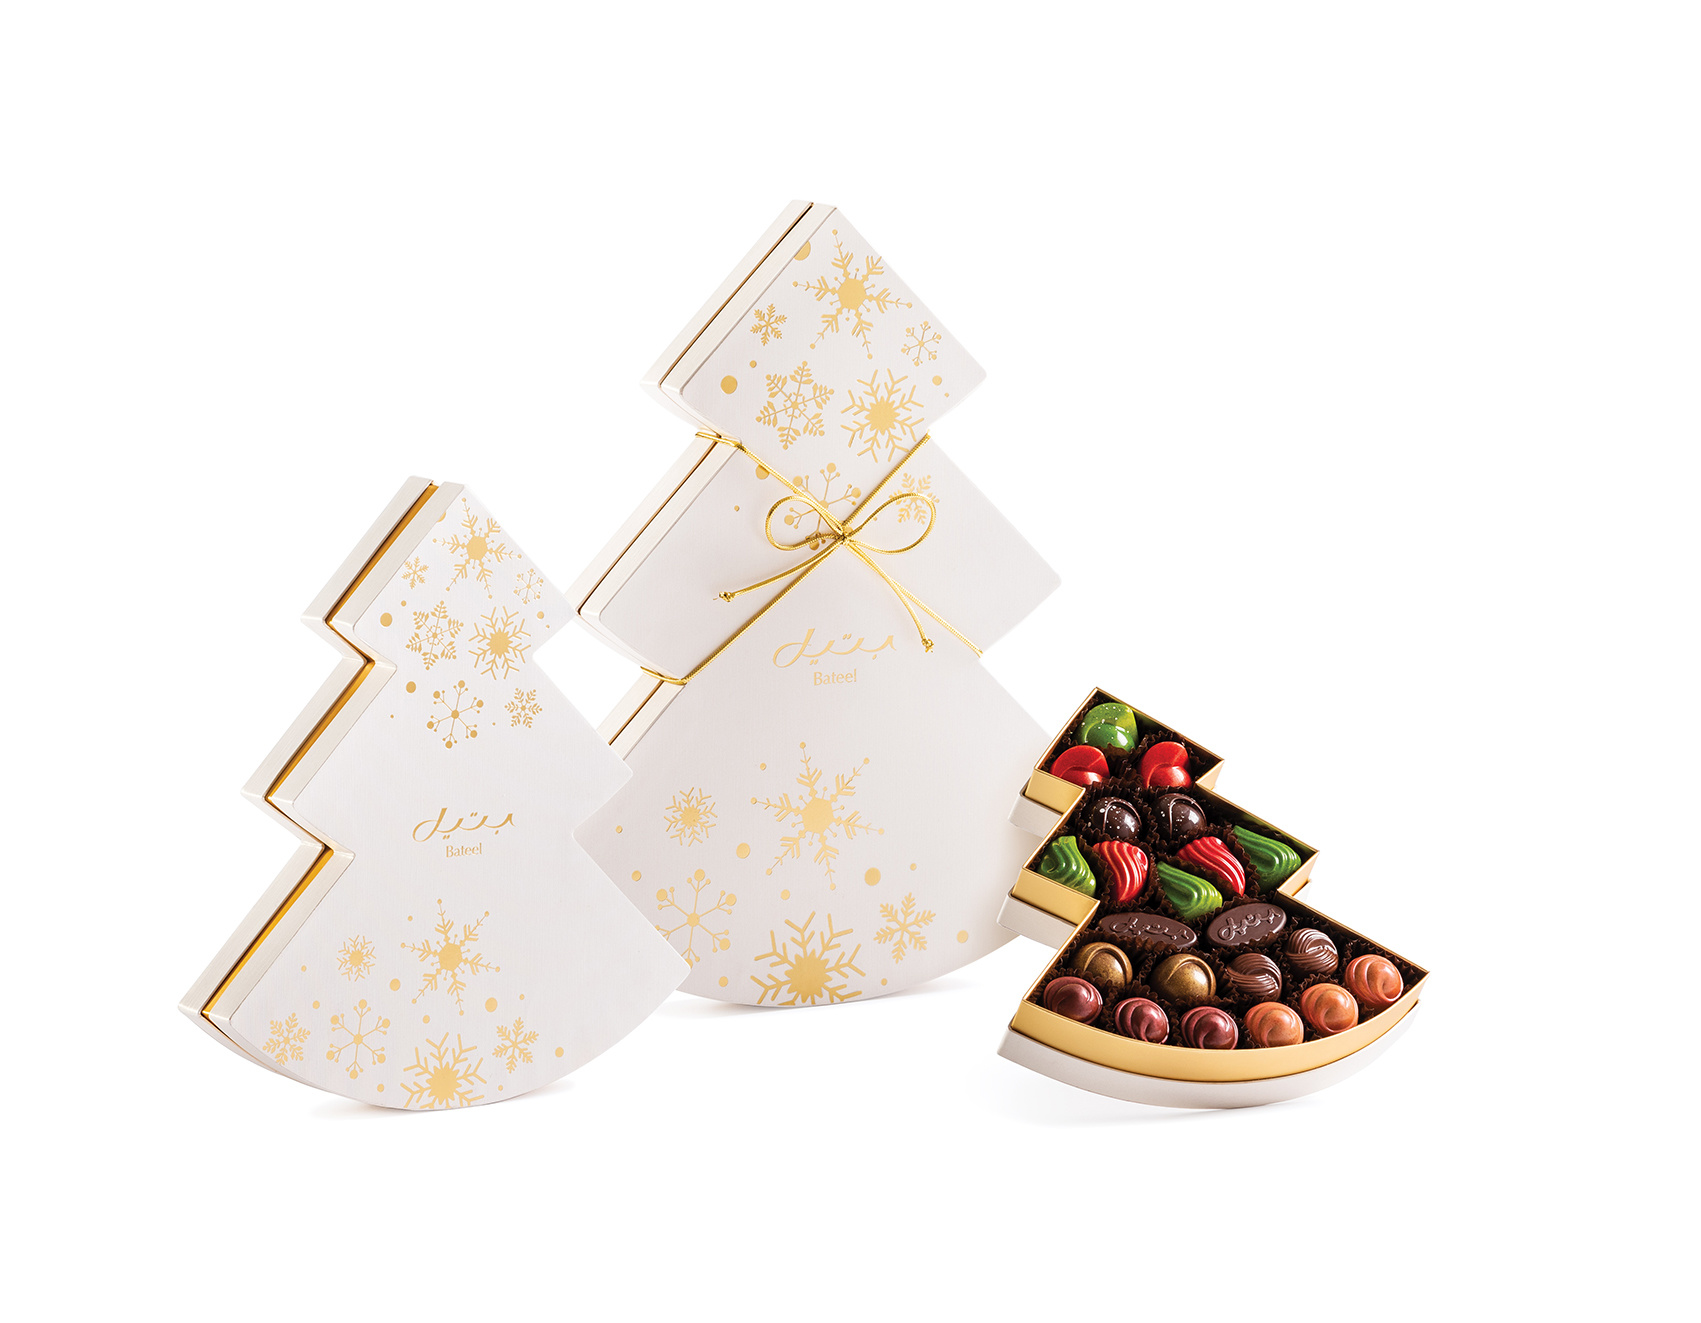 Bateel USA White Christmas Tree Gift Box